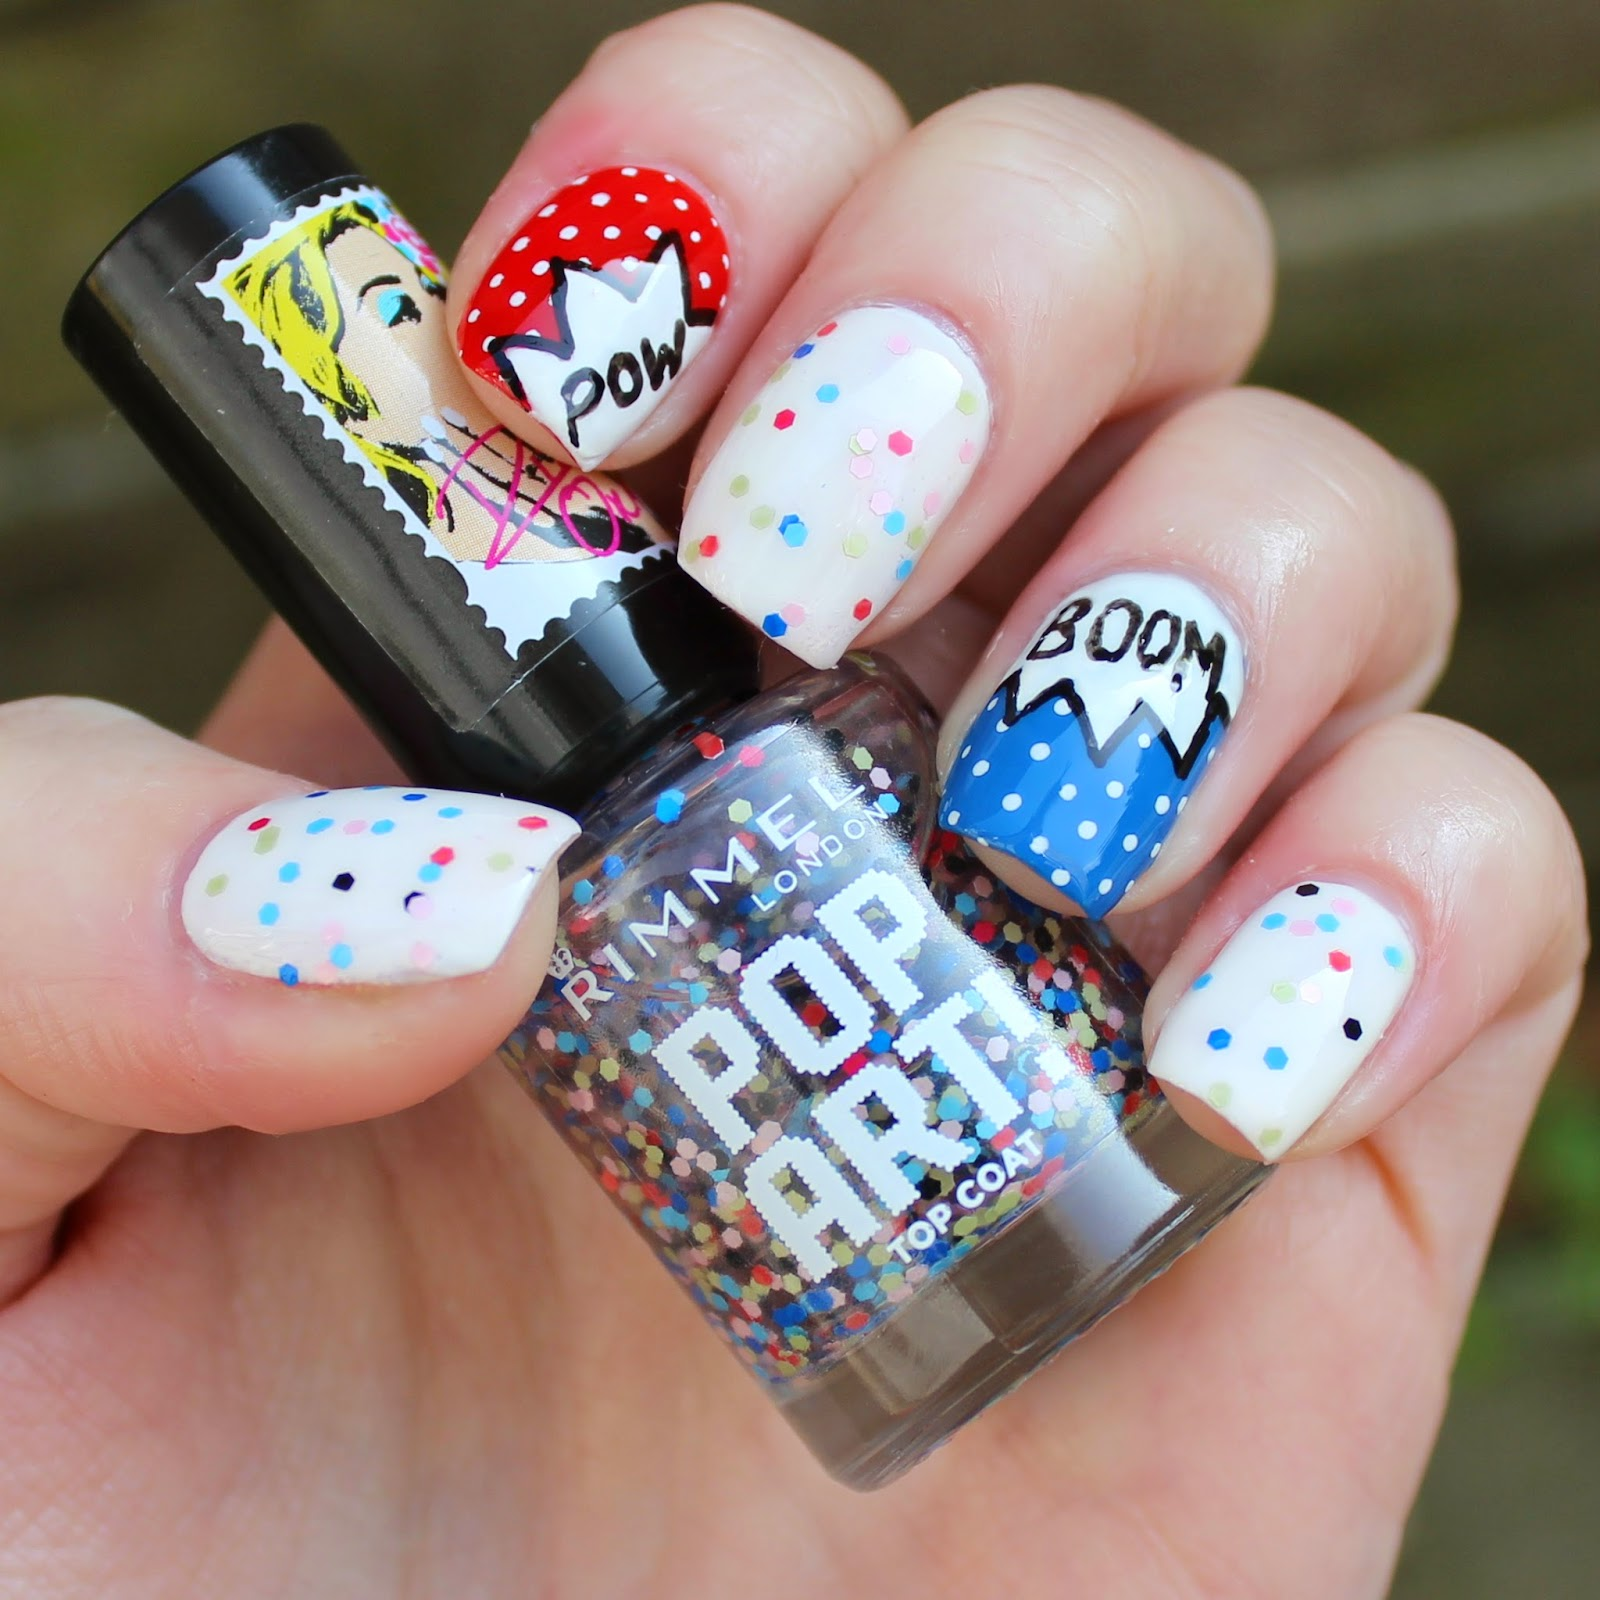 Dahlia Nails: Rimmel Rita Ora Pop Art Top Coat